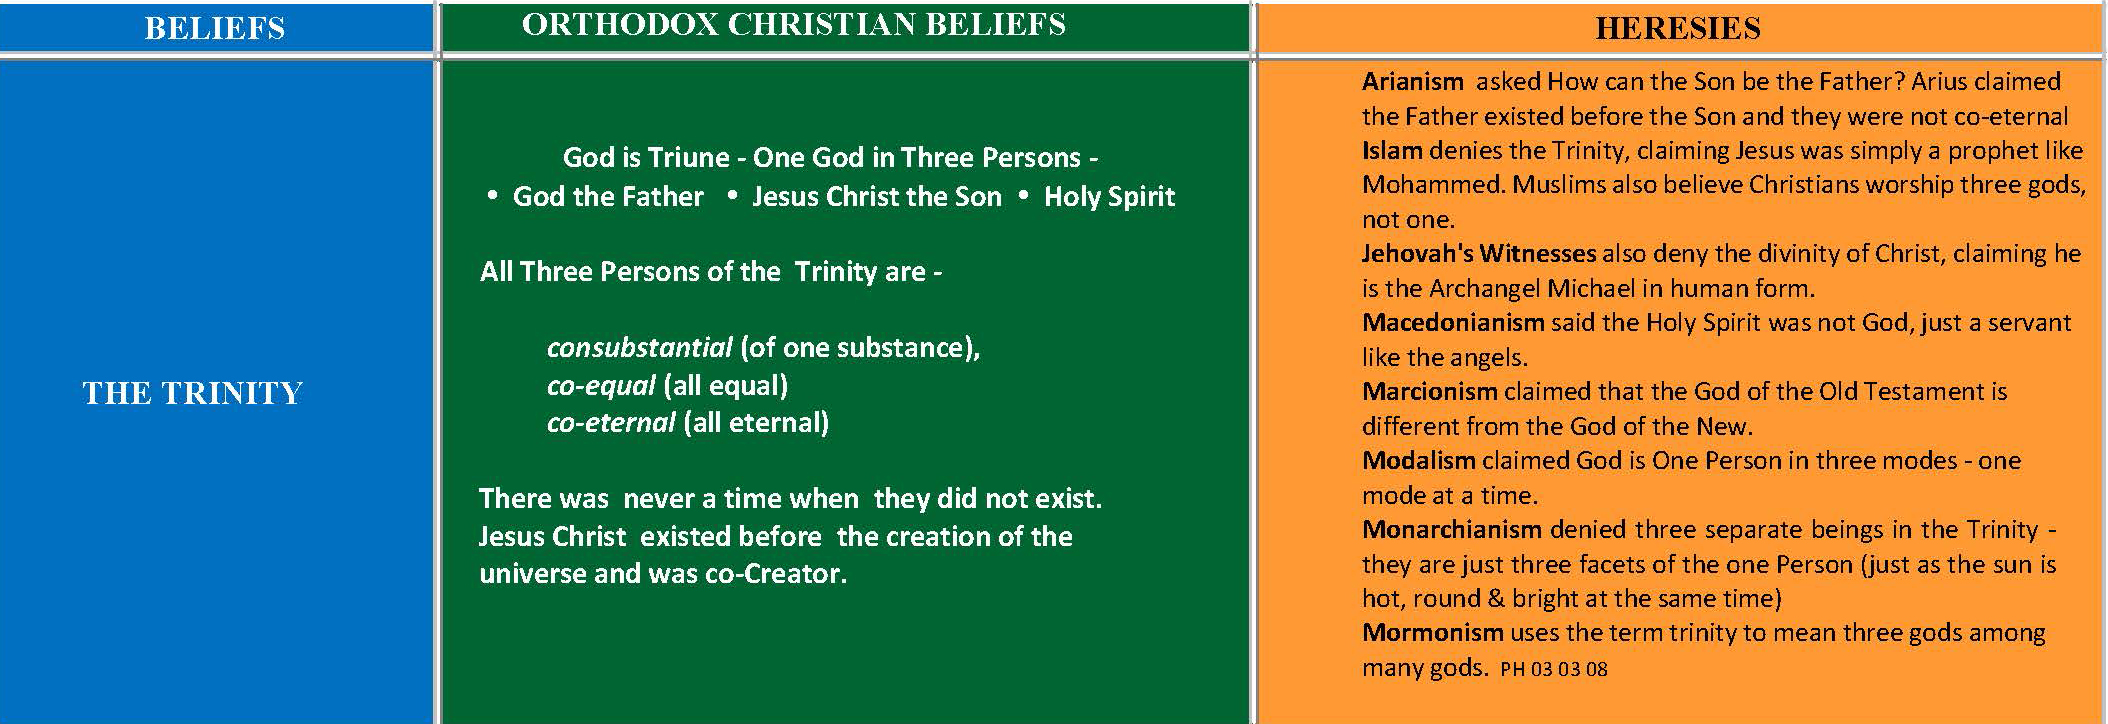 A SUMMARY ORTHODOX CHRISTIAN BELIEFS HERESIES A